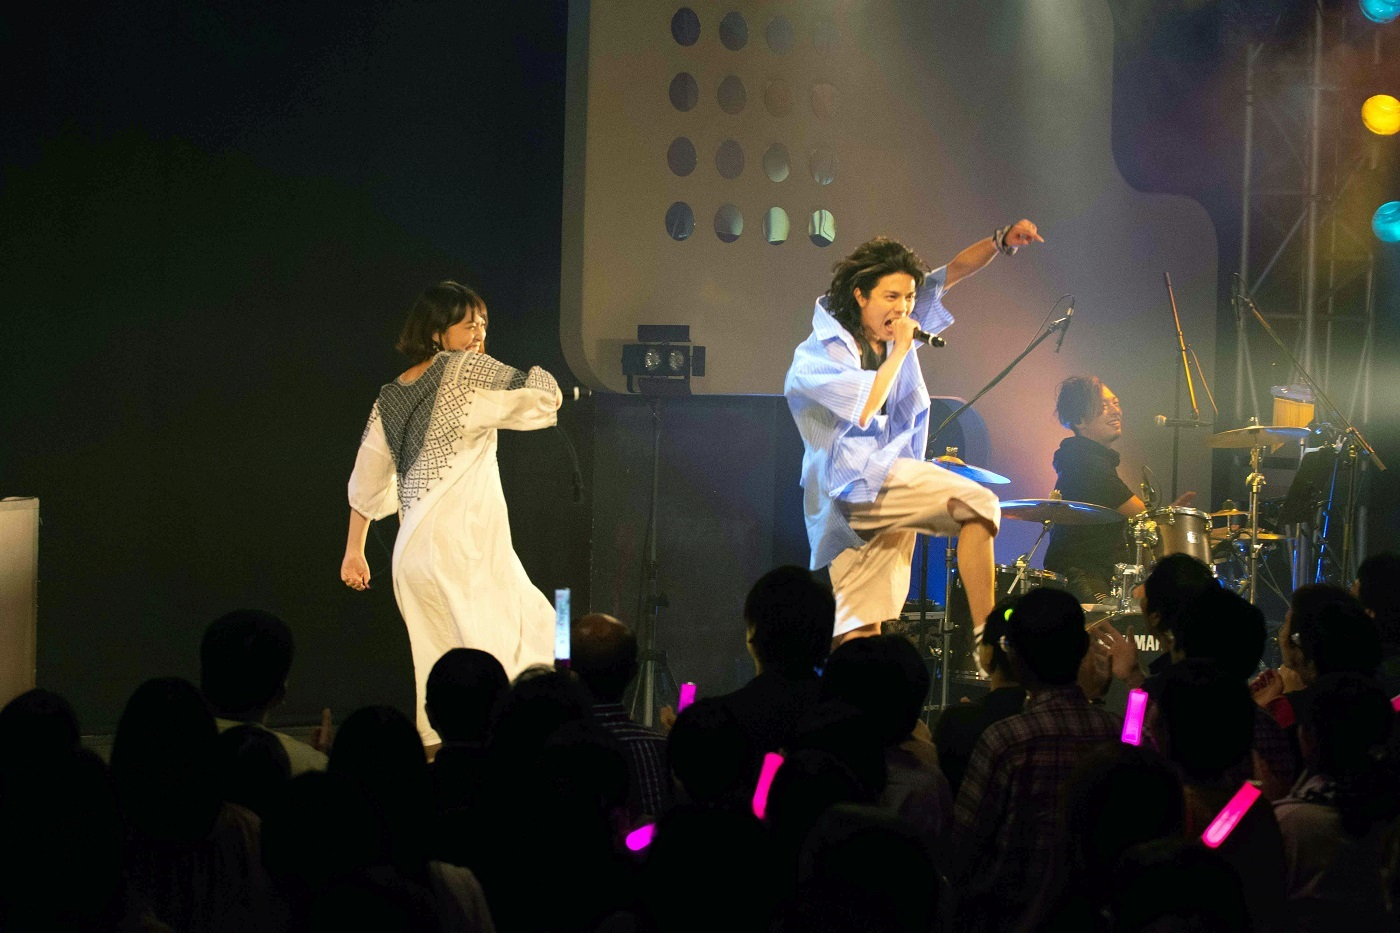 Takuya IDE ツーマンLIVE with RiRiKA『DELIVER』